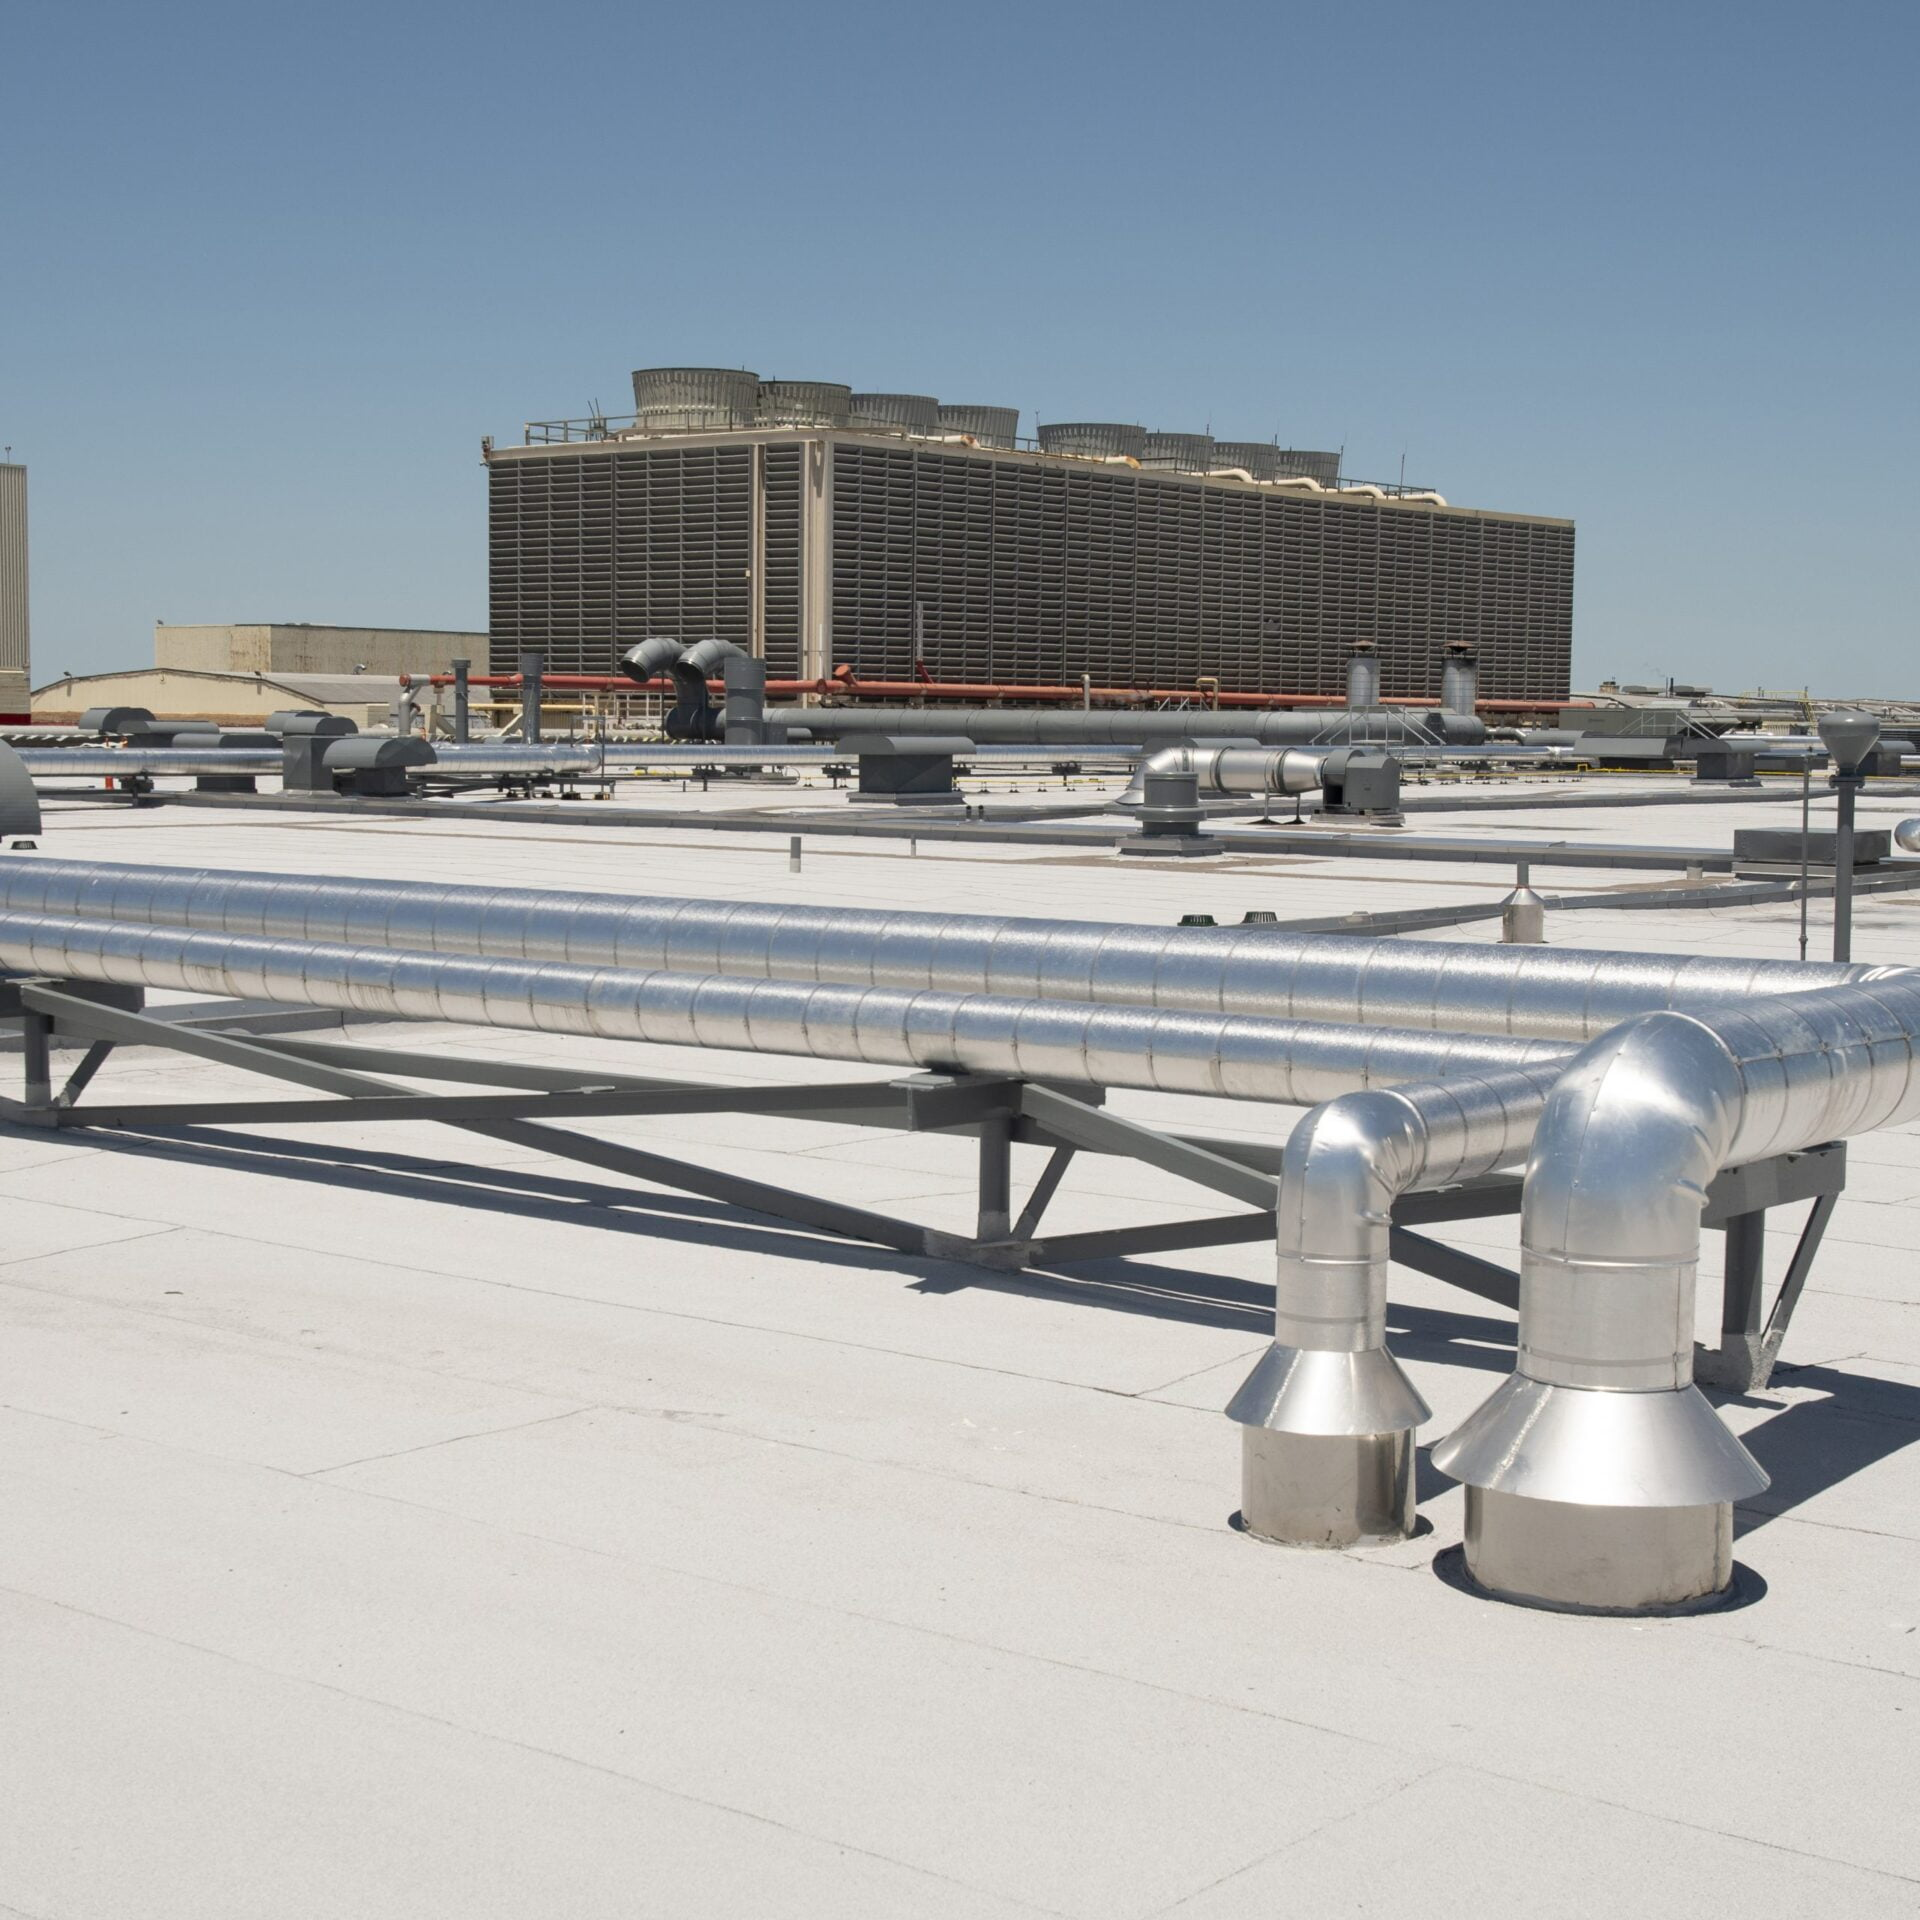 Image shot at American Airlines Plant, Completed Shots, Tulsa, Oklahoma, May 21, 2020, Jeffrey Parr/Supreme Roofing